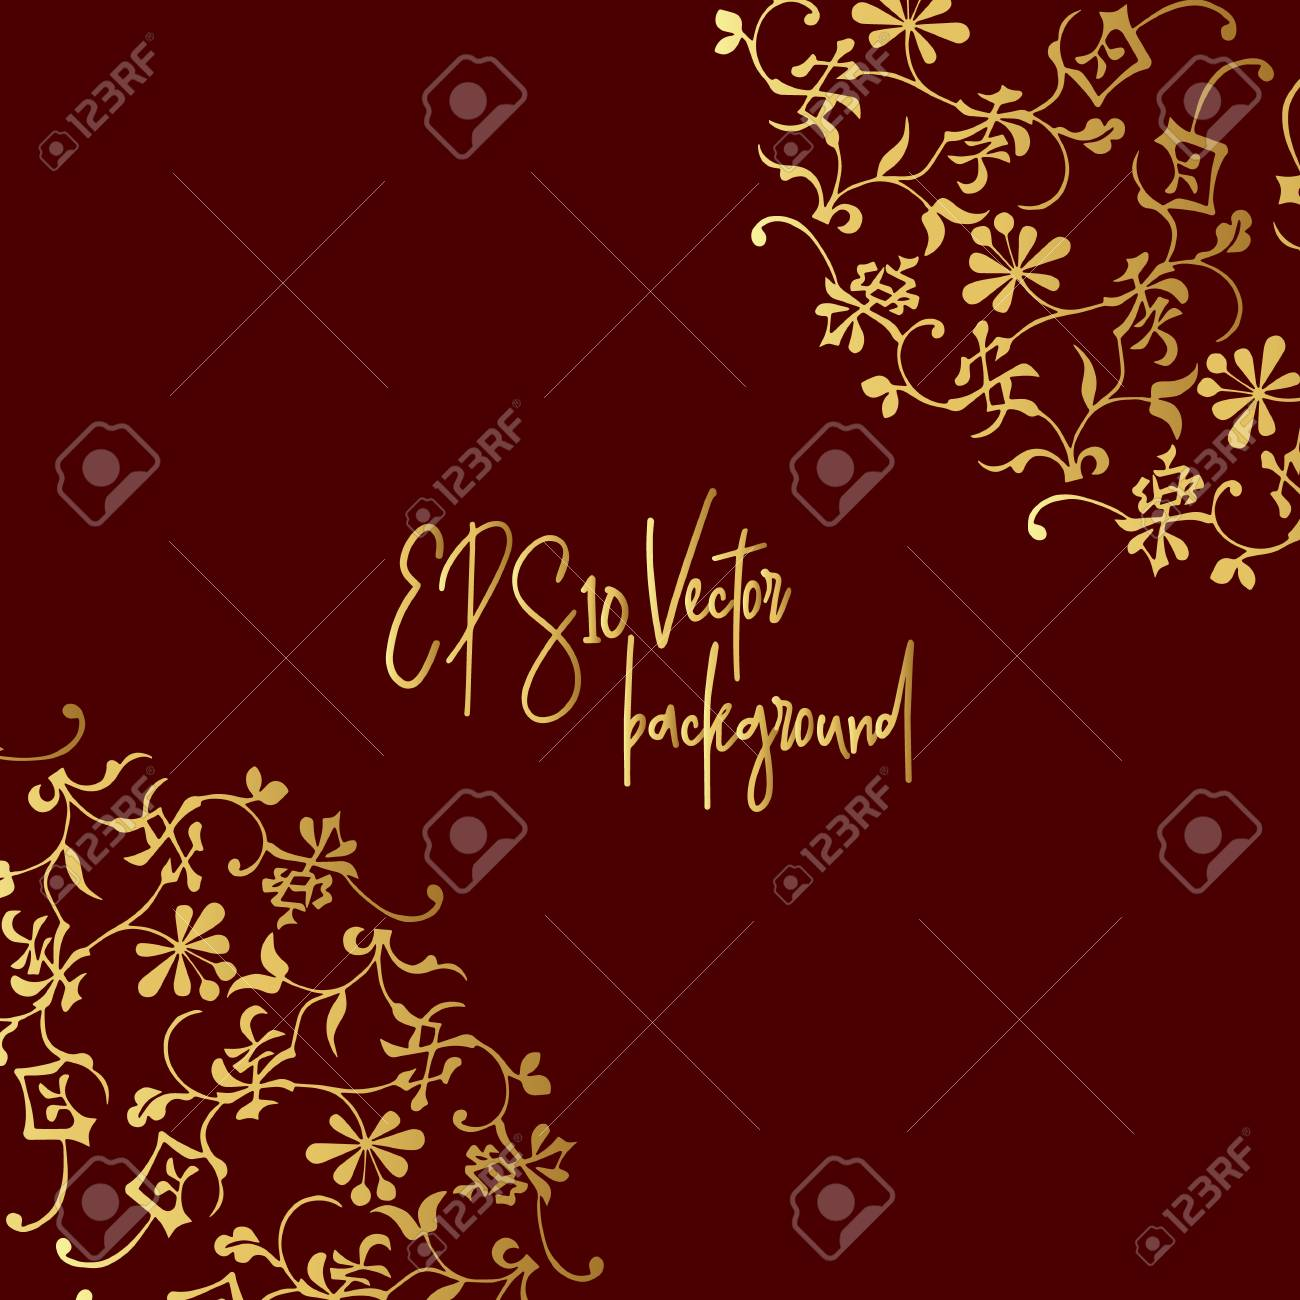 Lace pattern with a place for text Stock Vector - 86537761 35e5ac2d4